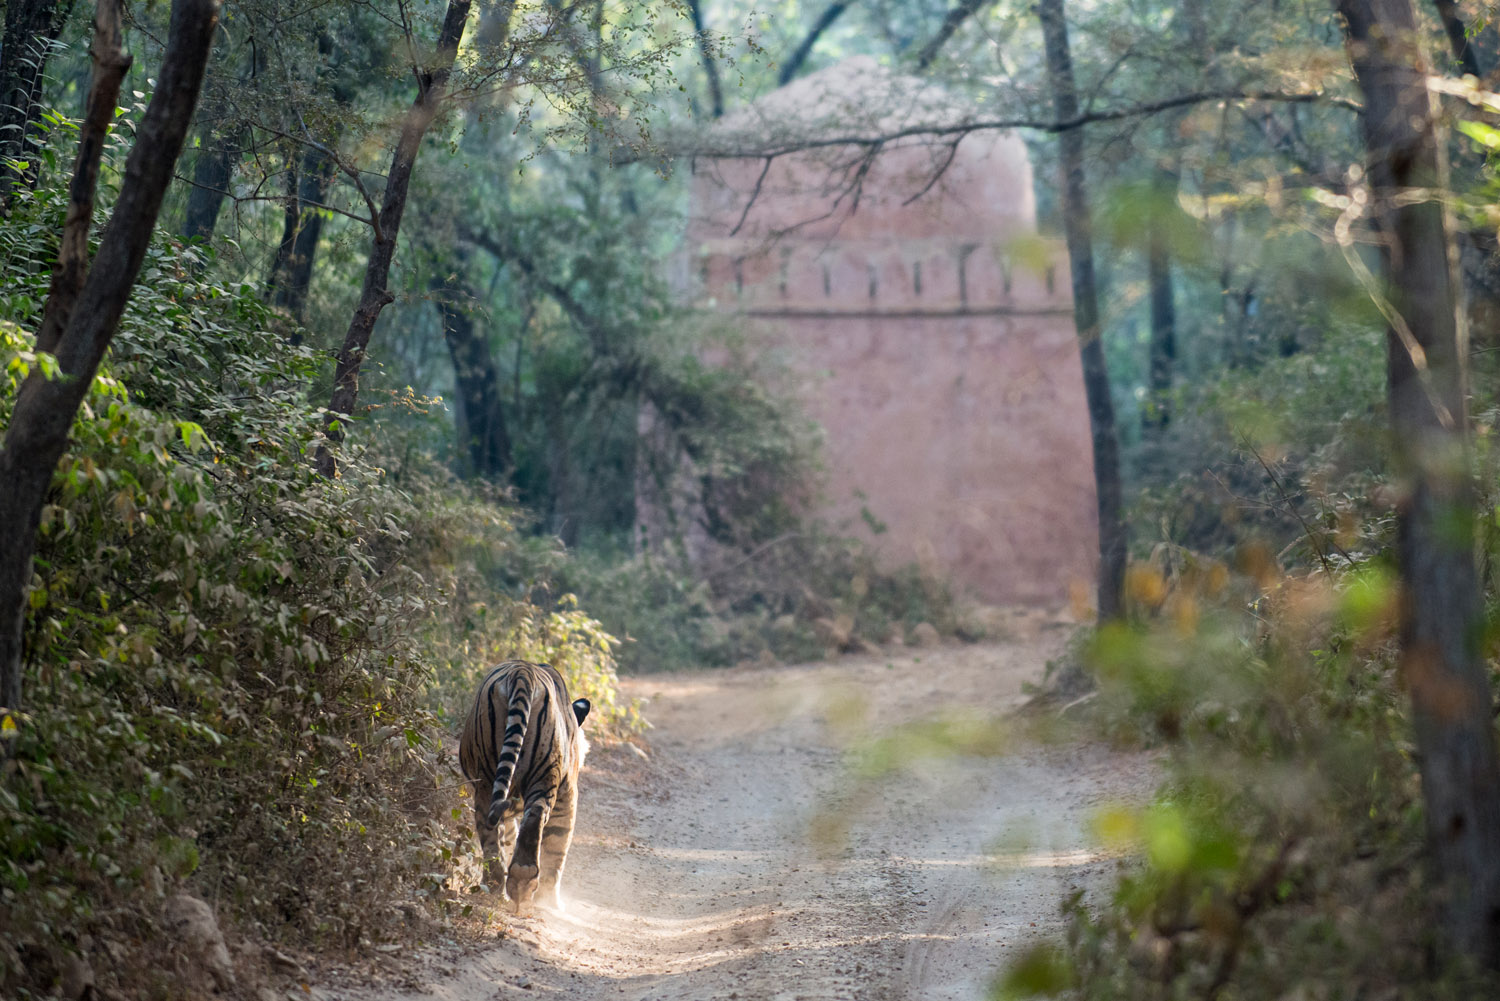 Bengal tiger walking along forest track towards sacred tomb, Ranthambhore National Park, Rajasthan, India